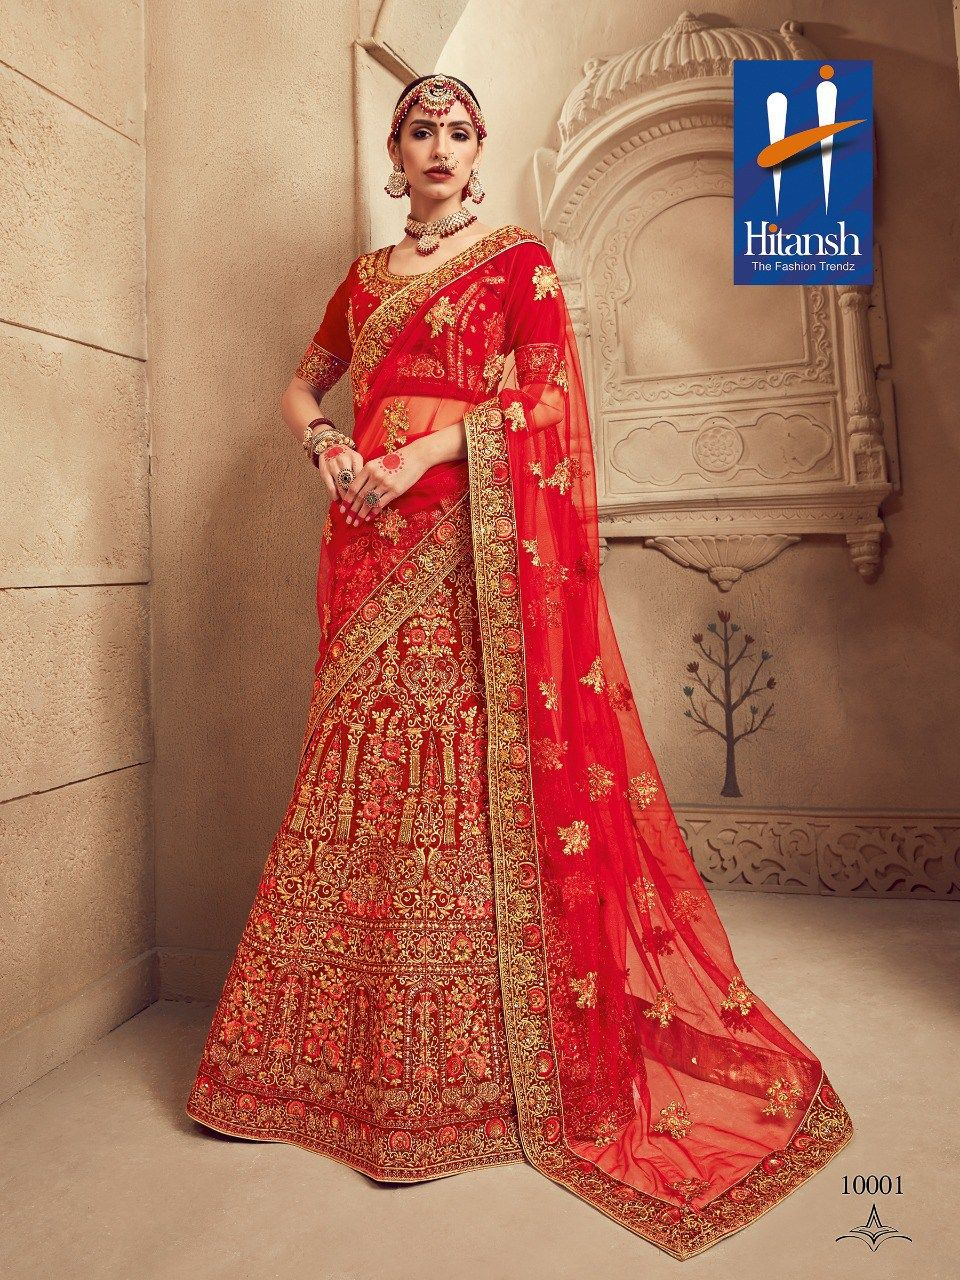 748235644b HITANSH FASHION THE ROYAL BRIDE DESIGNER WEDDING LEHENGA CHOLI COLLECTION  MANUFACTURER WHOLESALER AND EXPORTER OF INDIAN WEAR IN INDIA | Sagar Impex